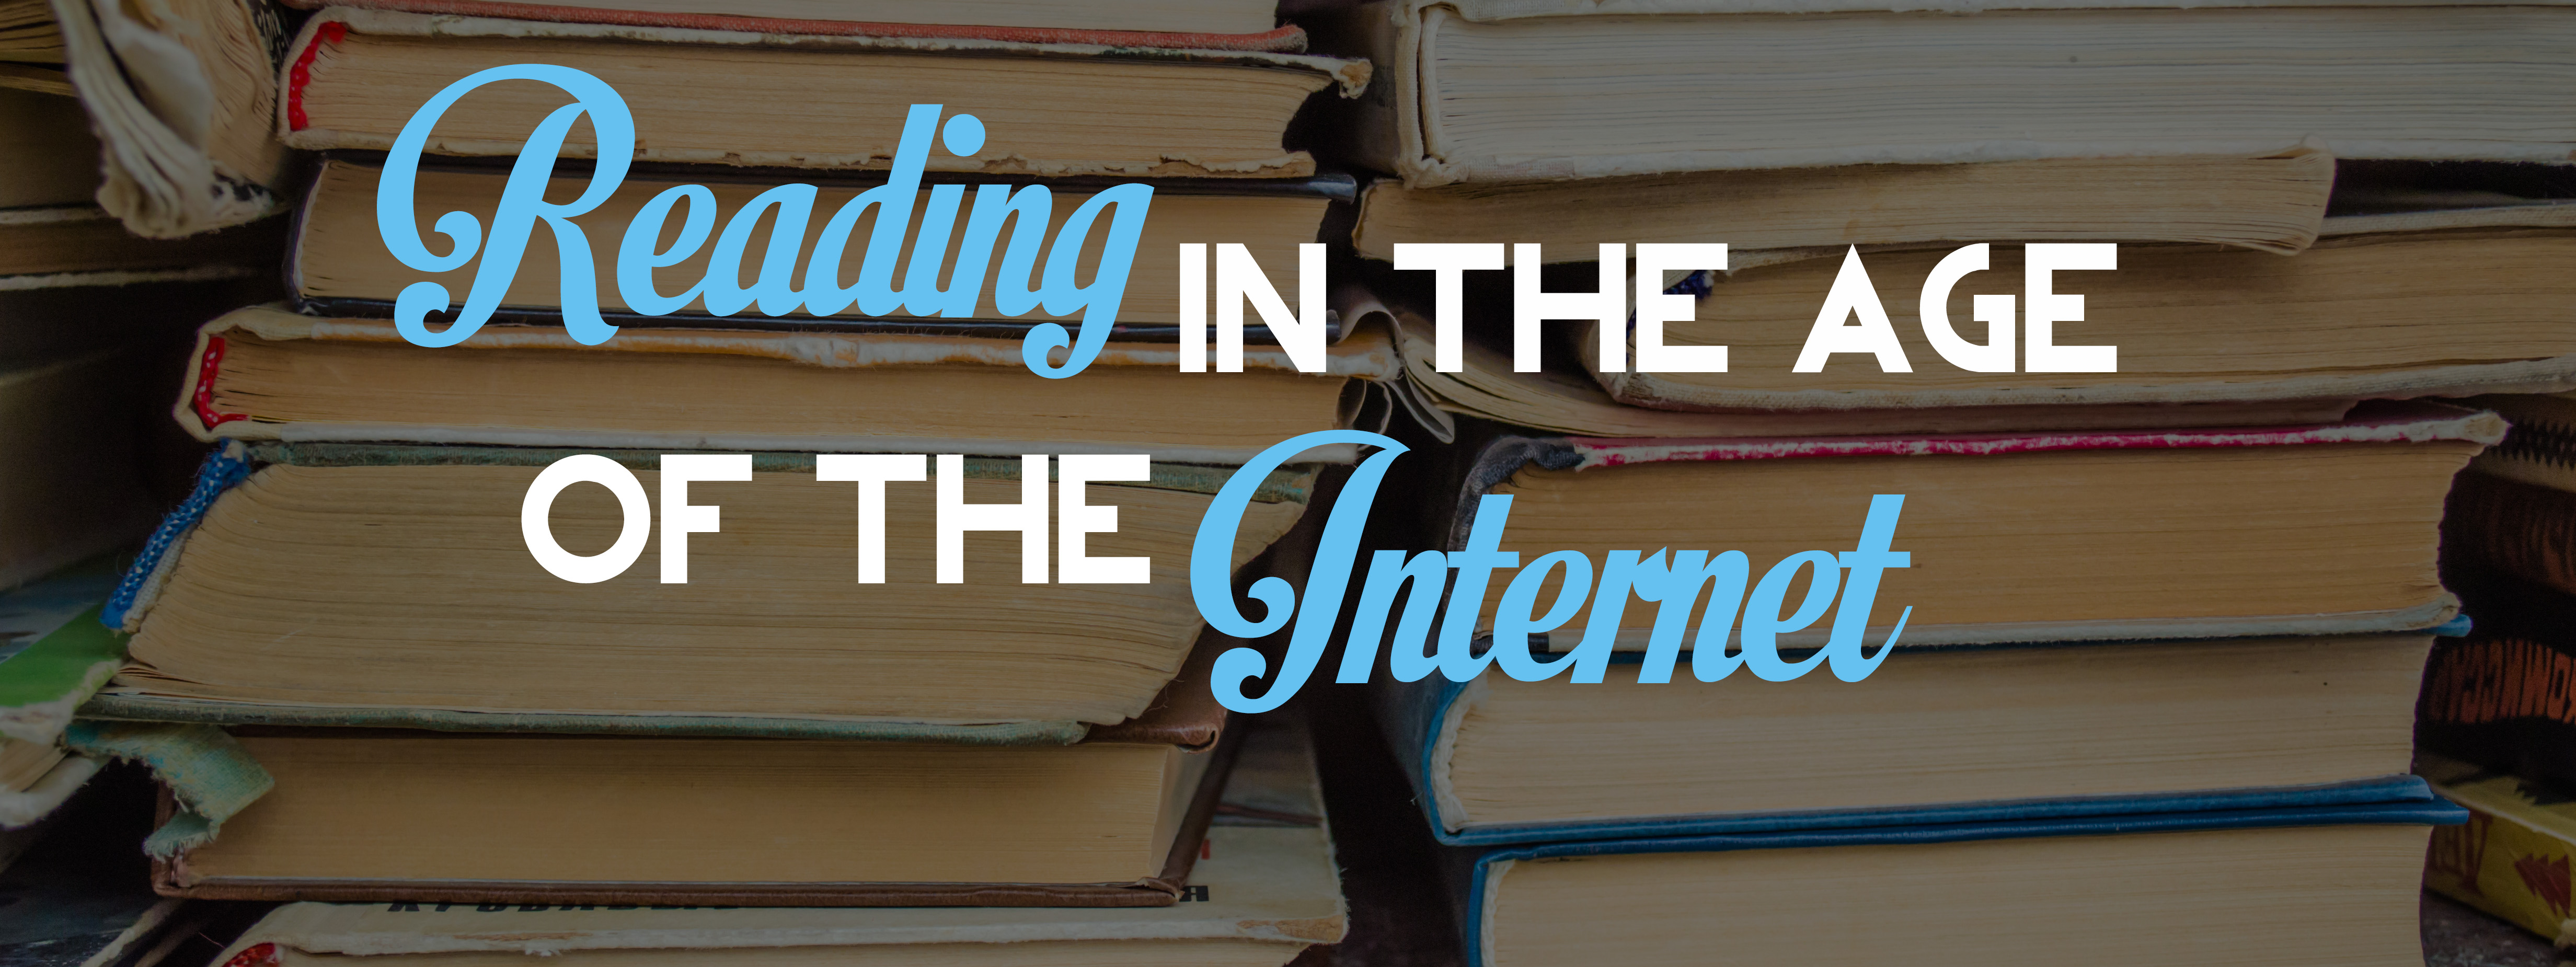 Read in the Age of the Internet